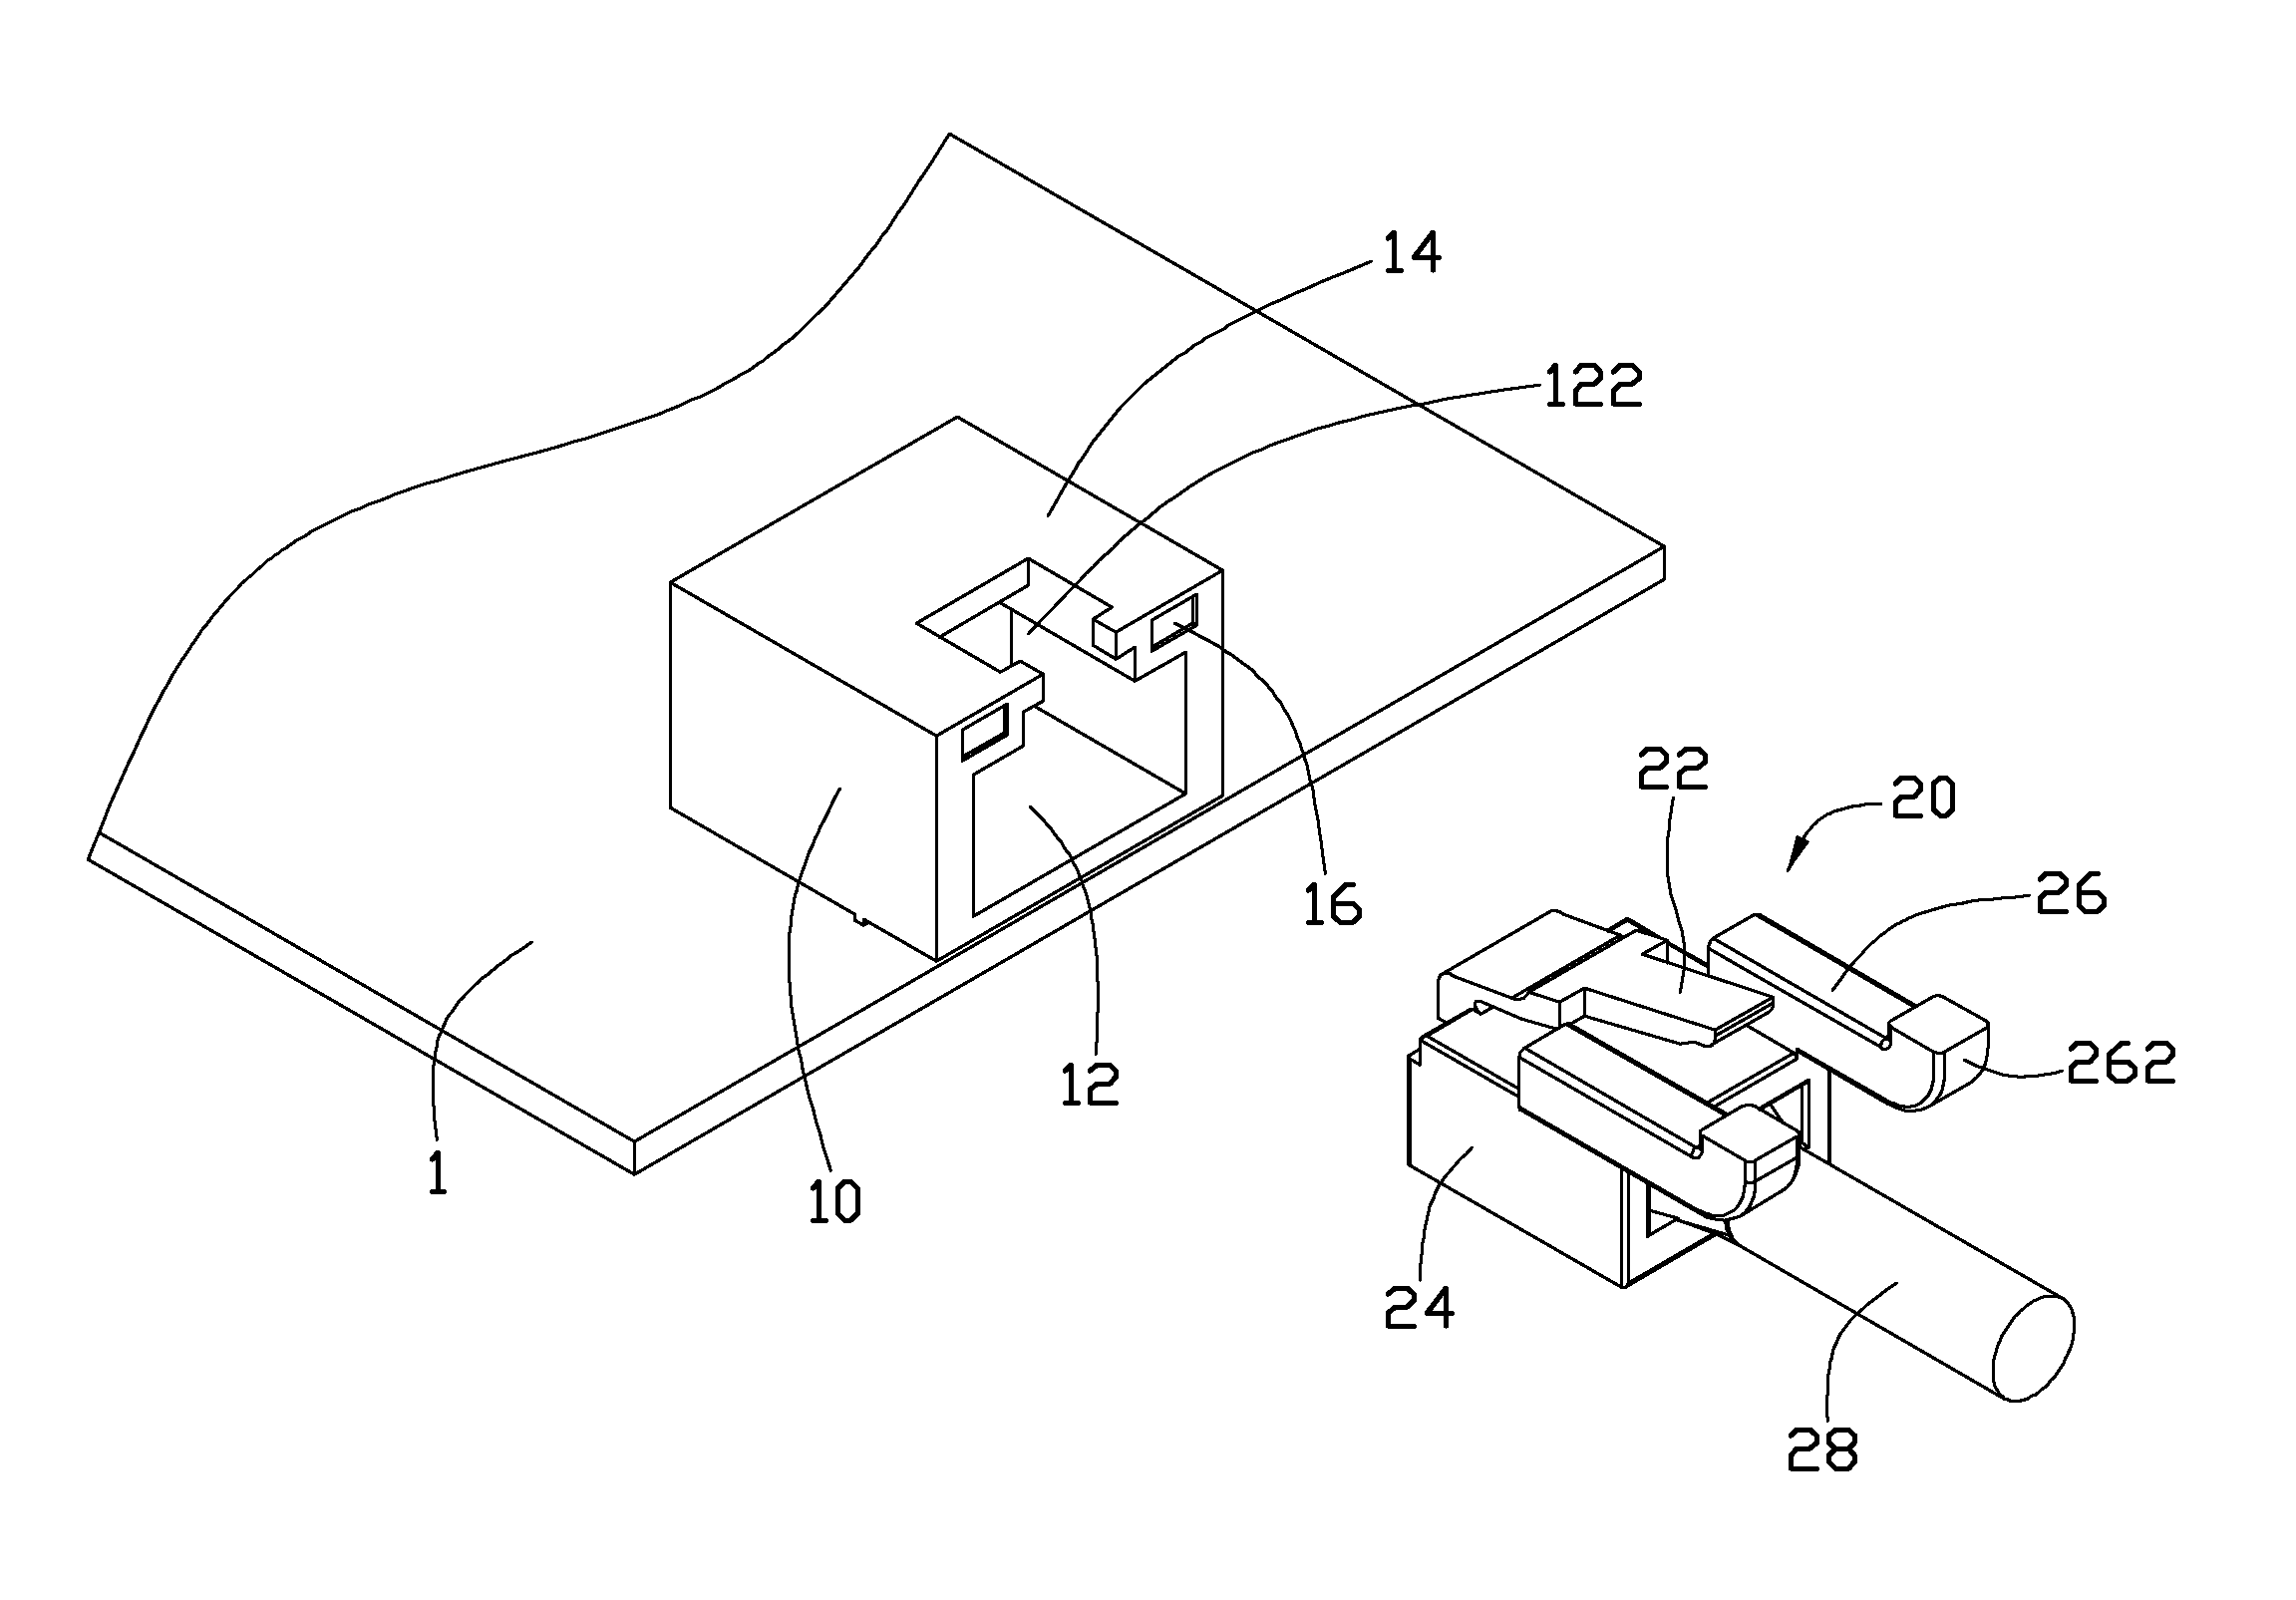 patent us8100712 rj 45 connector patents RJ45 Wiring -Diagram patent drawing